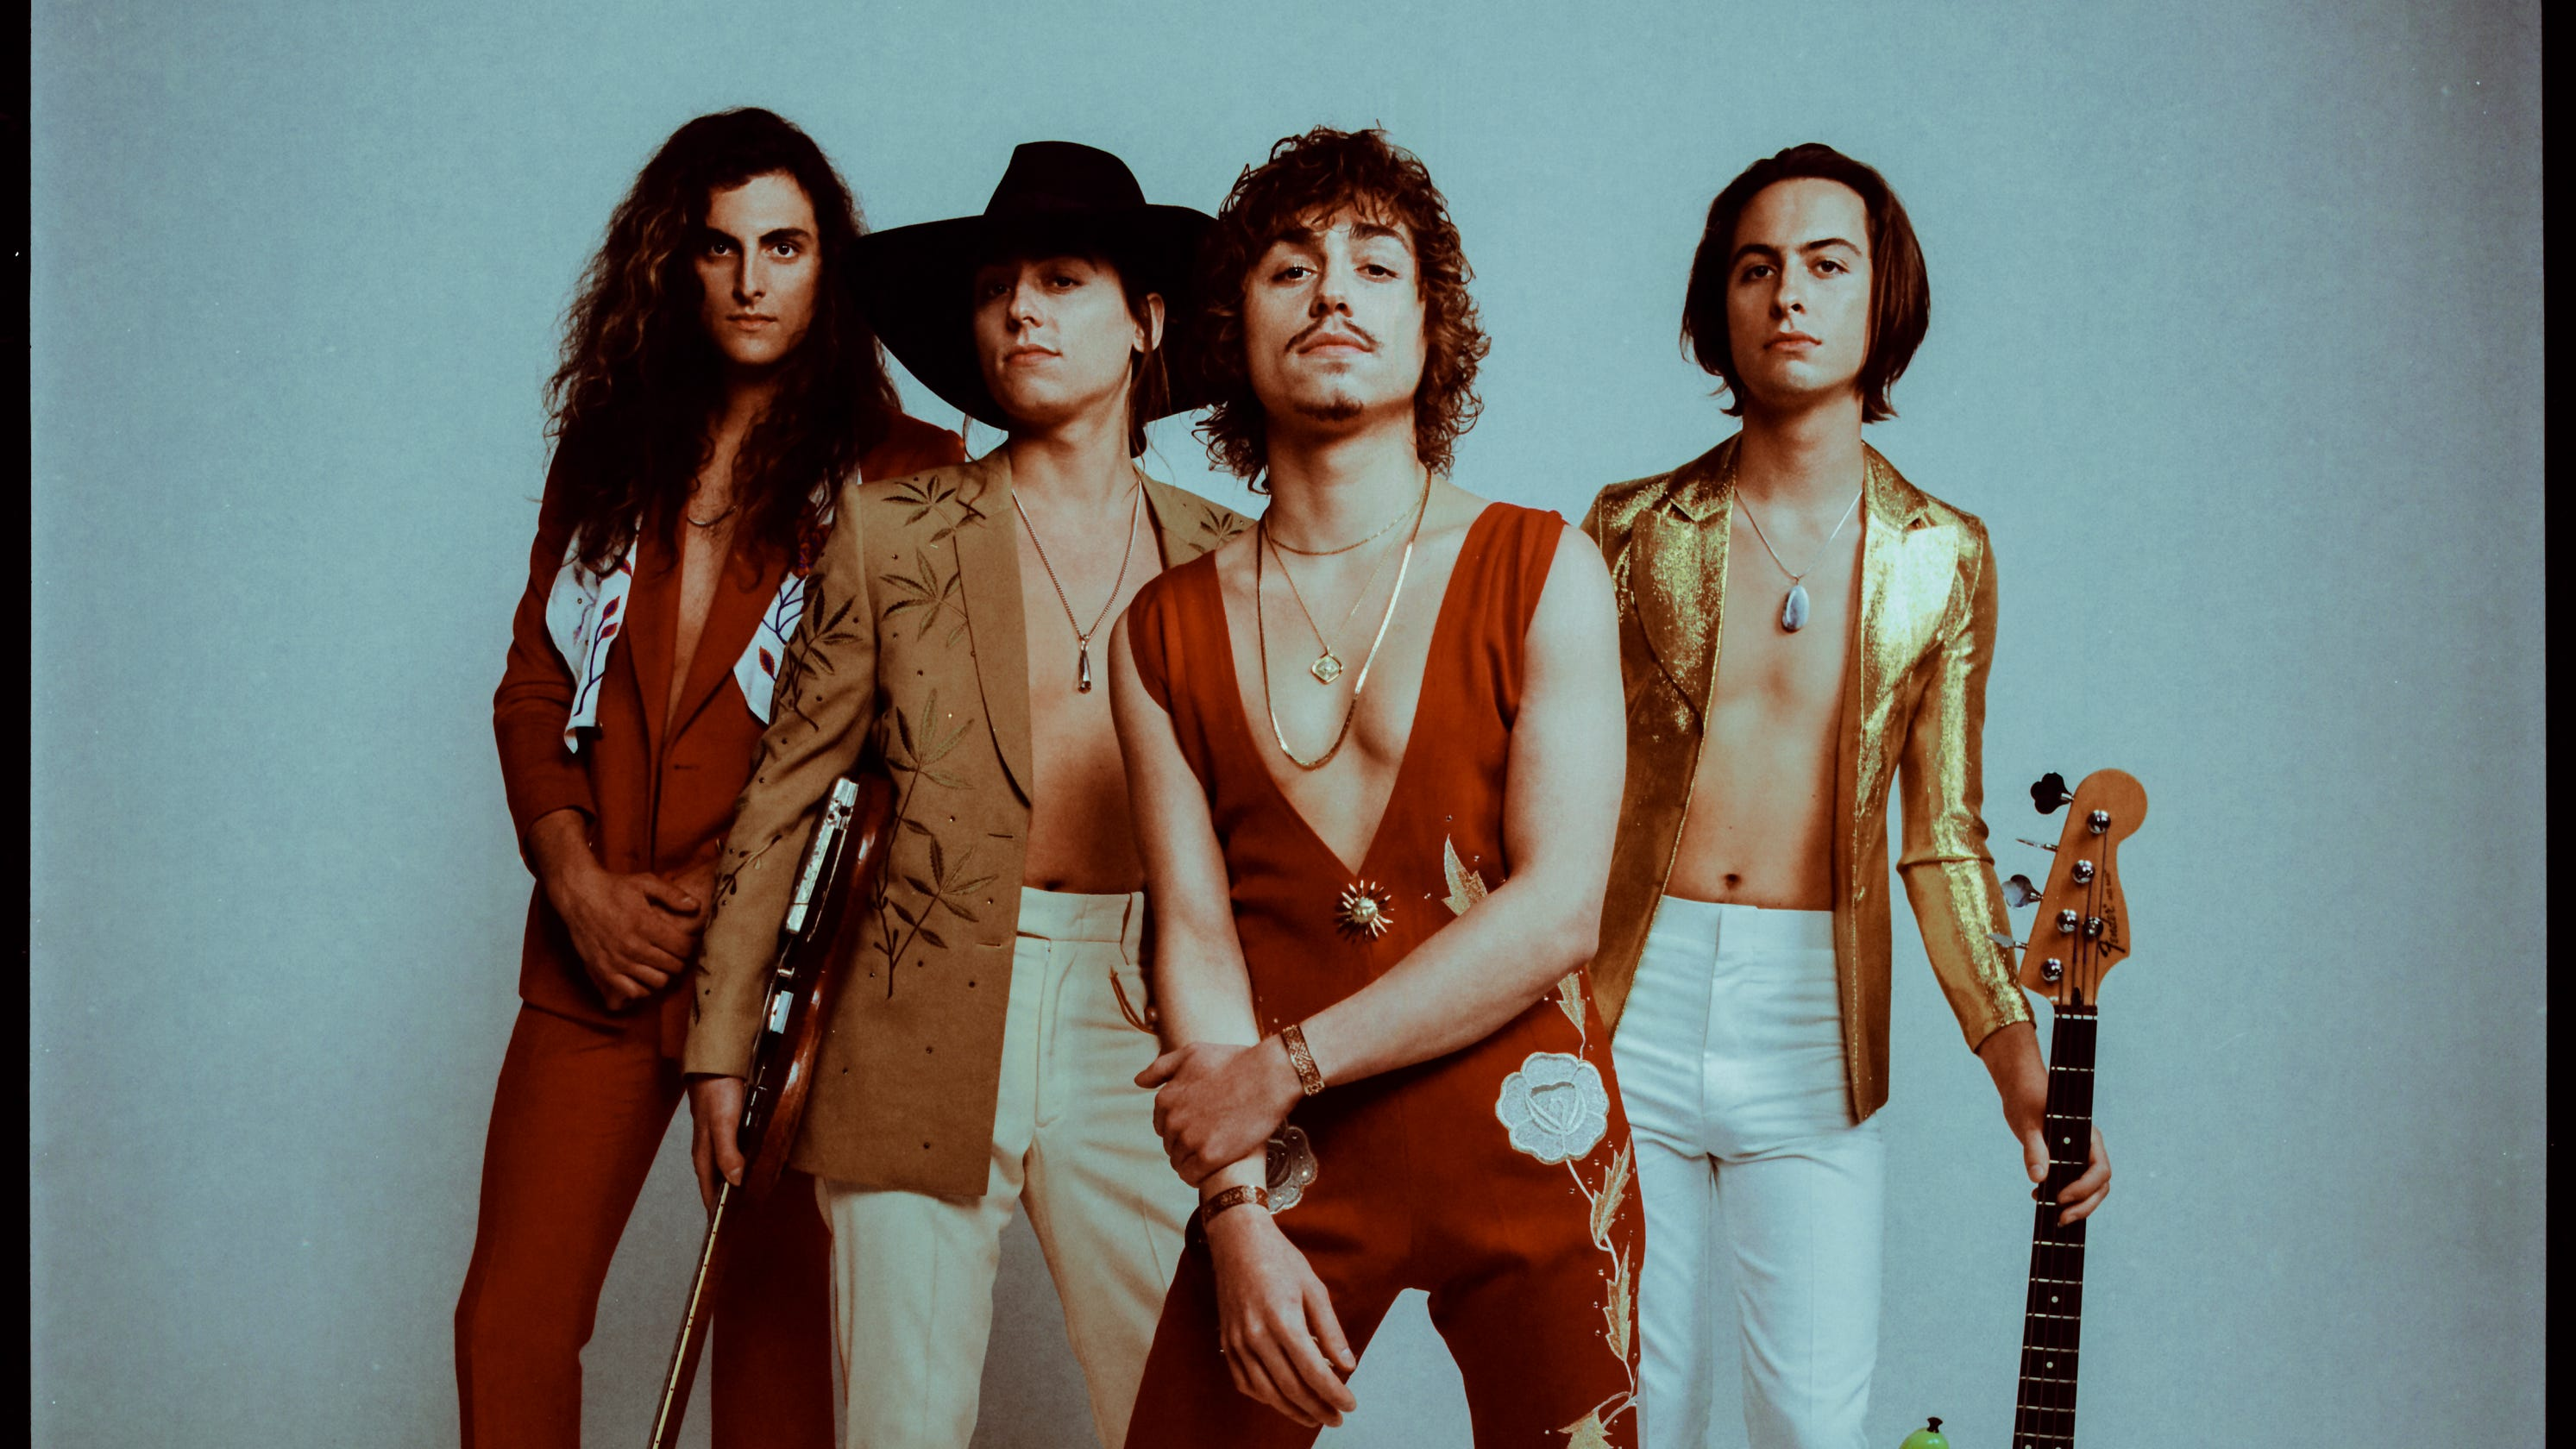 Greta Van Fleet opens up on new album: Hard rockers wanted music 'fit to be the score of a fantastic film'